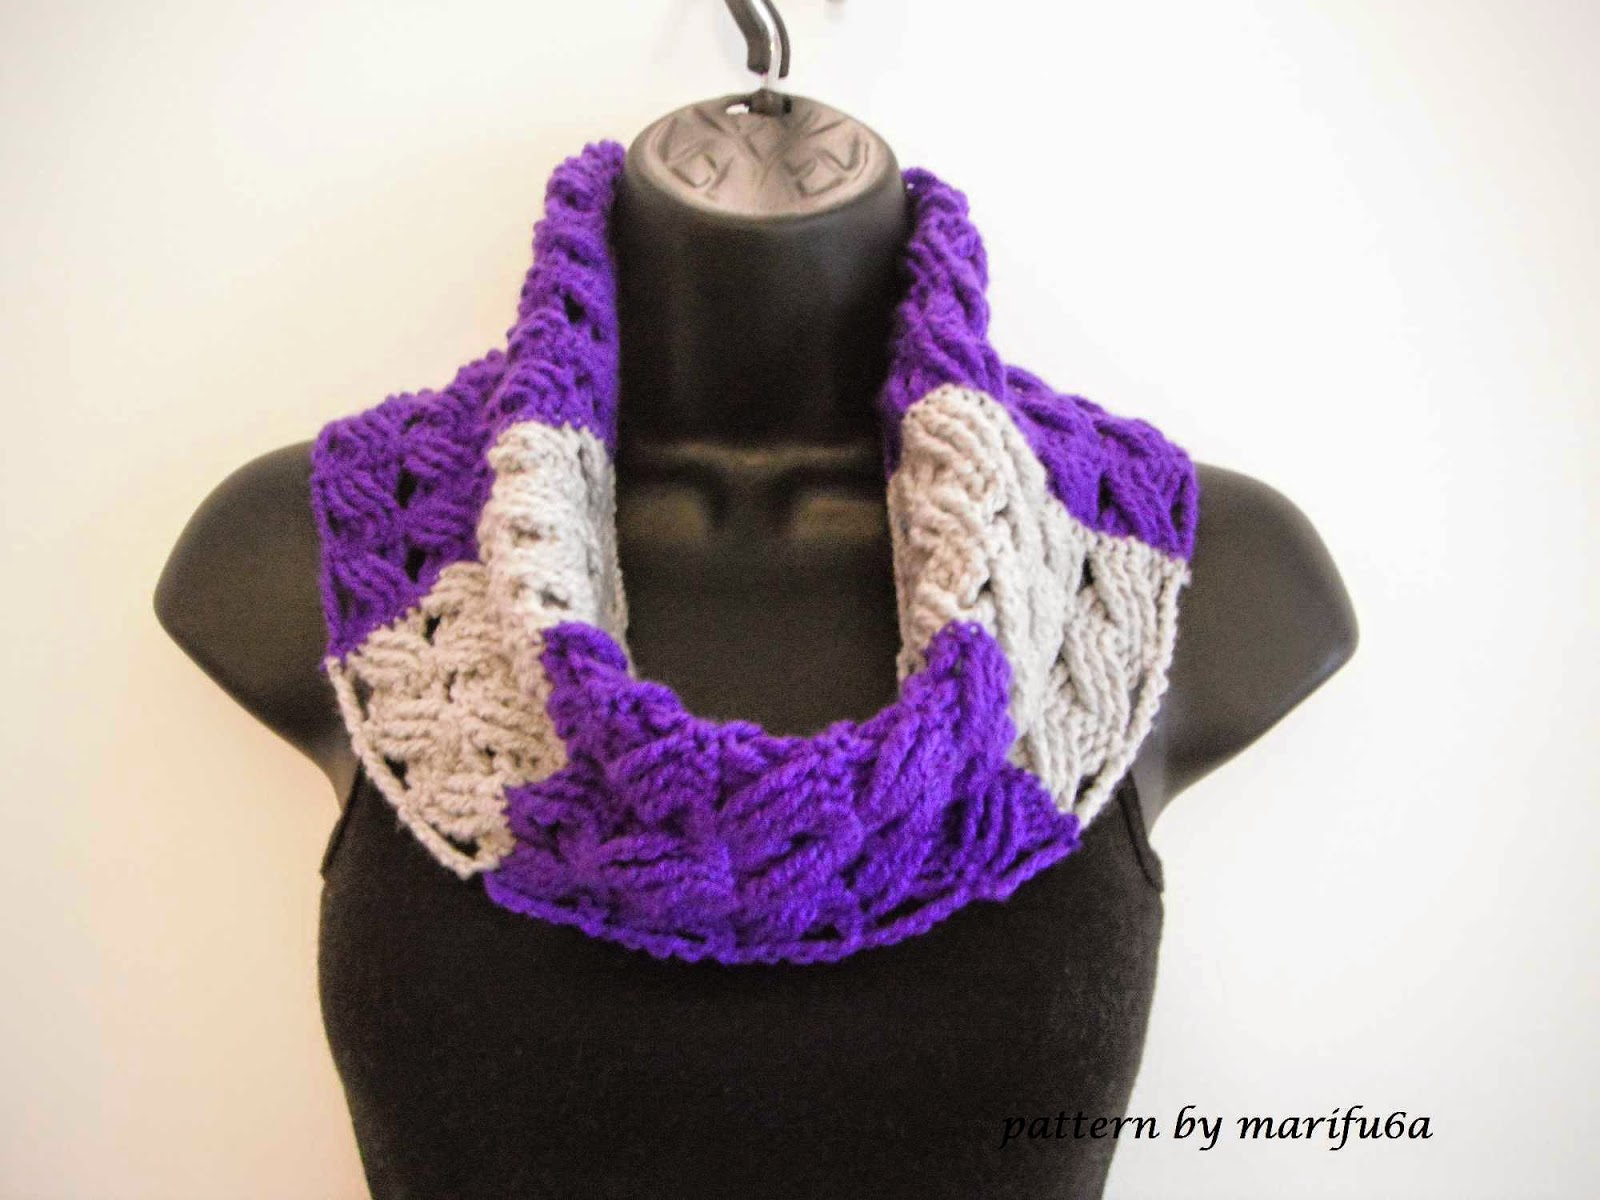 crochet patterns and video tutorials: how to crochet cowl free pattern ...